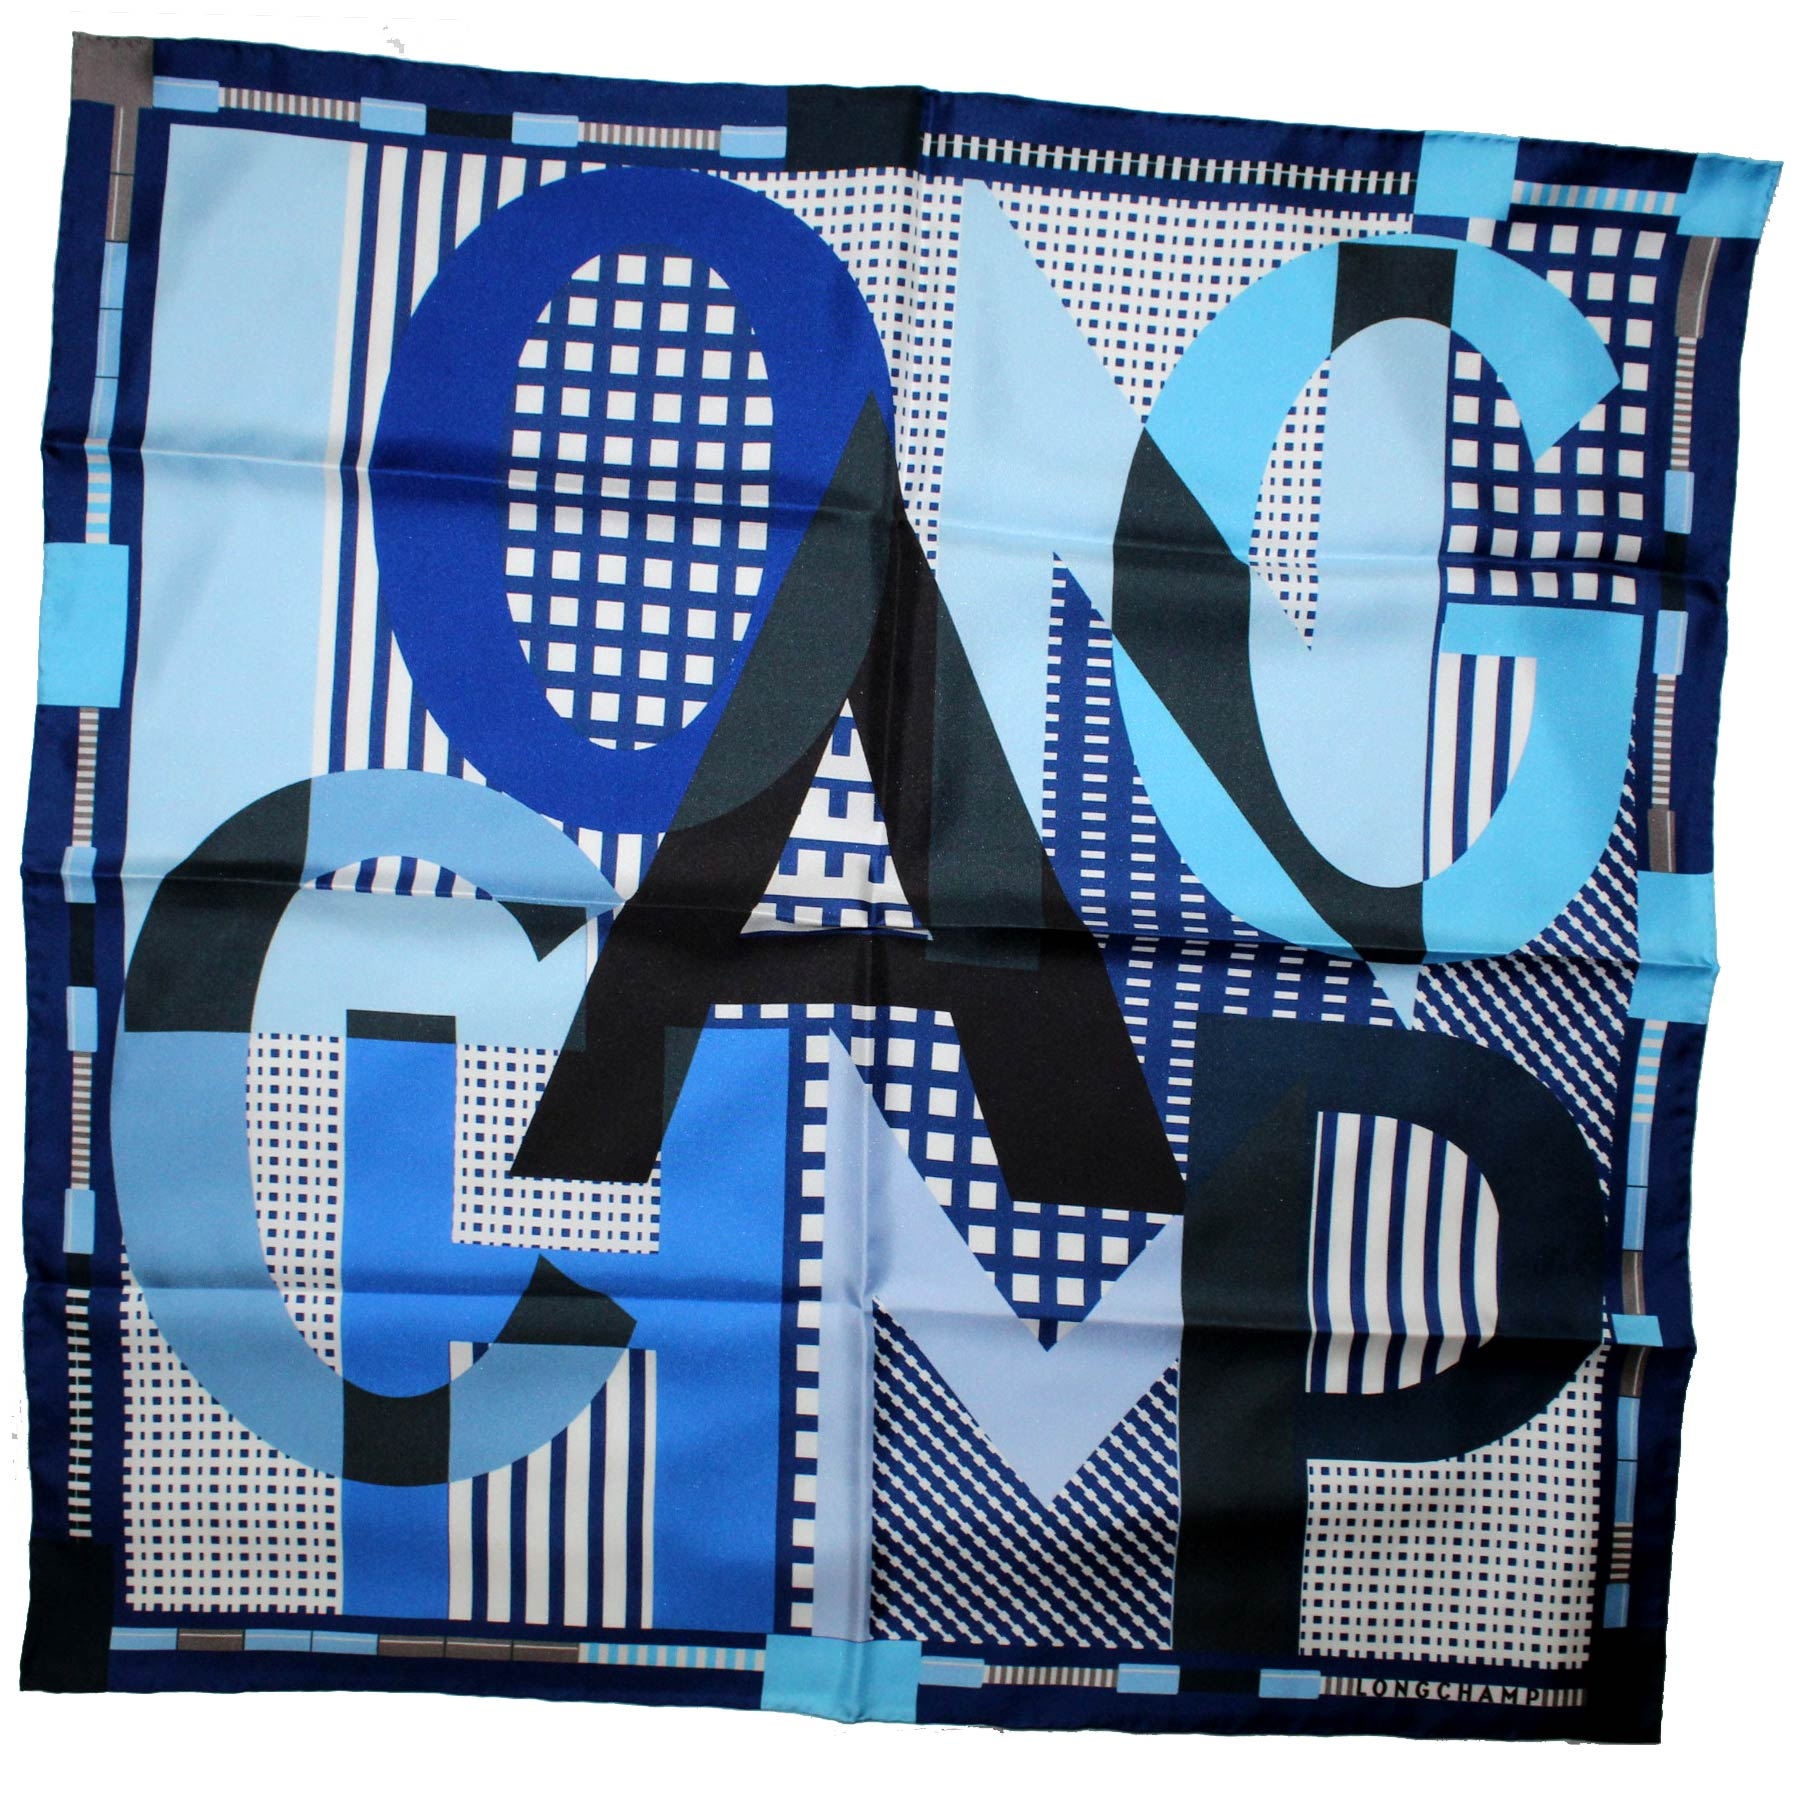 Longchamp Scarf Blue Logo Design - Medium Square Twill Silk Foulard SALE